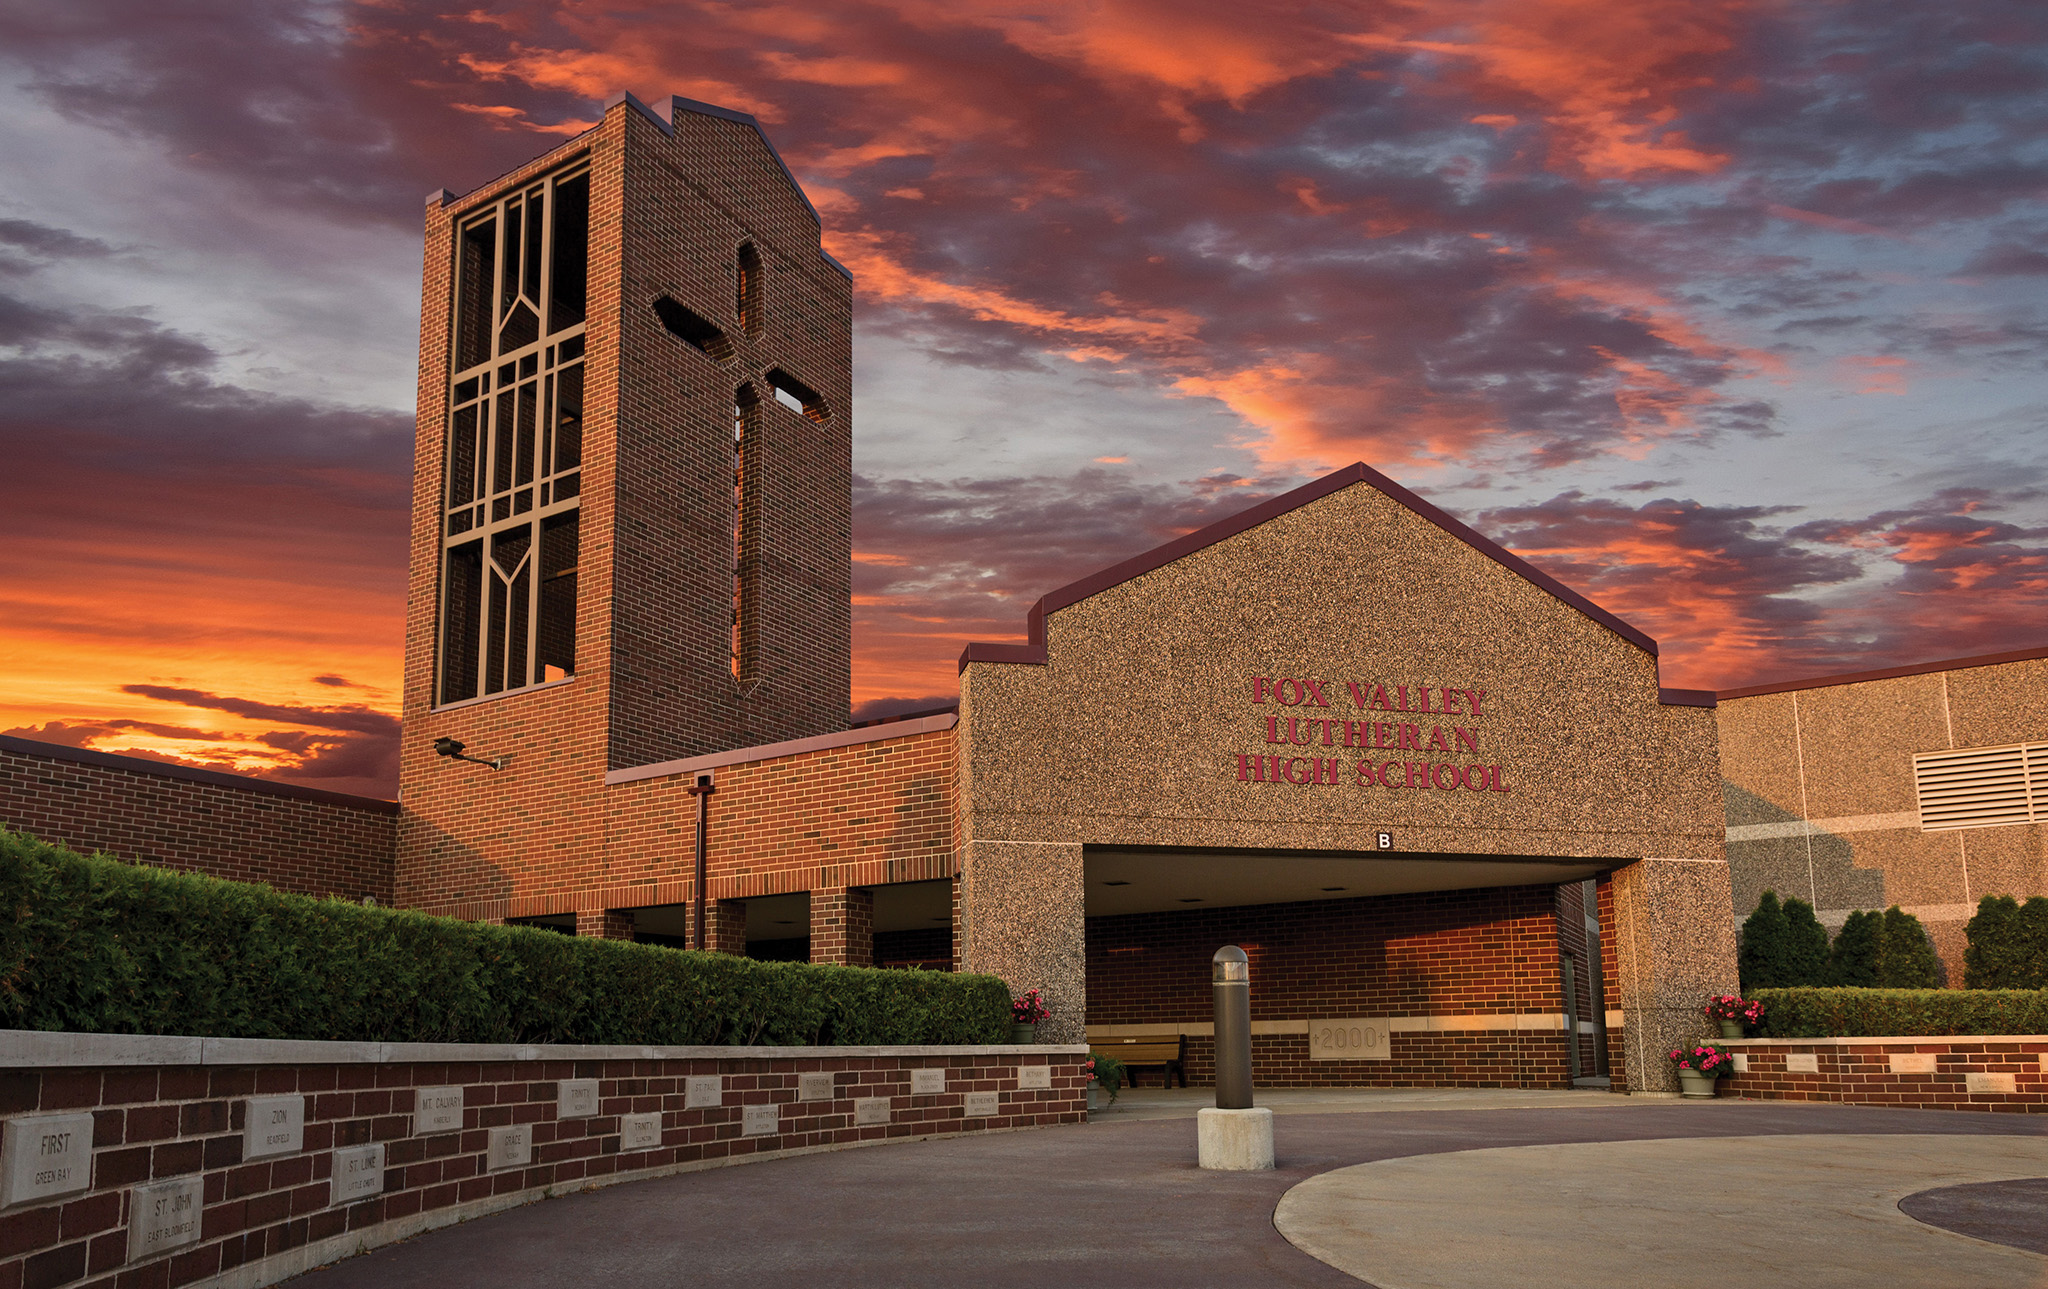 Fox-Valley-Lutheran-High-School